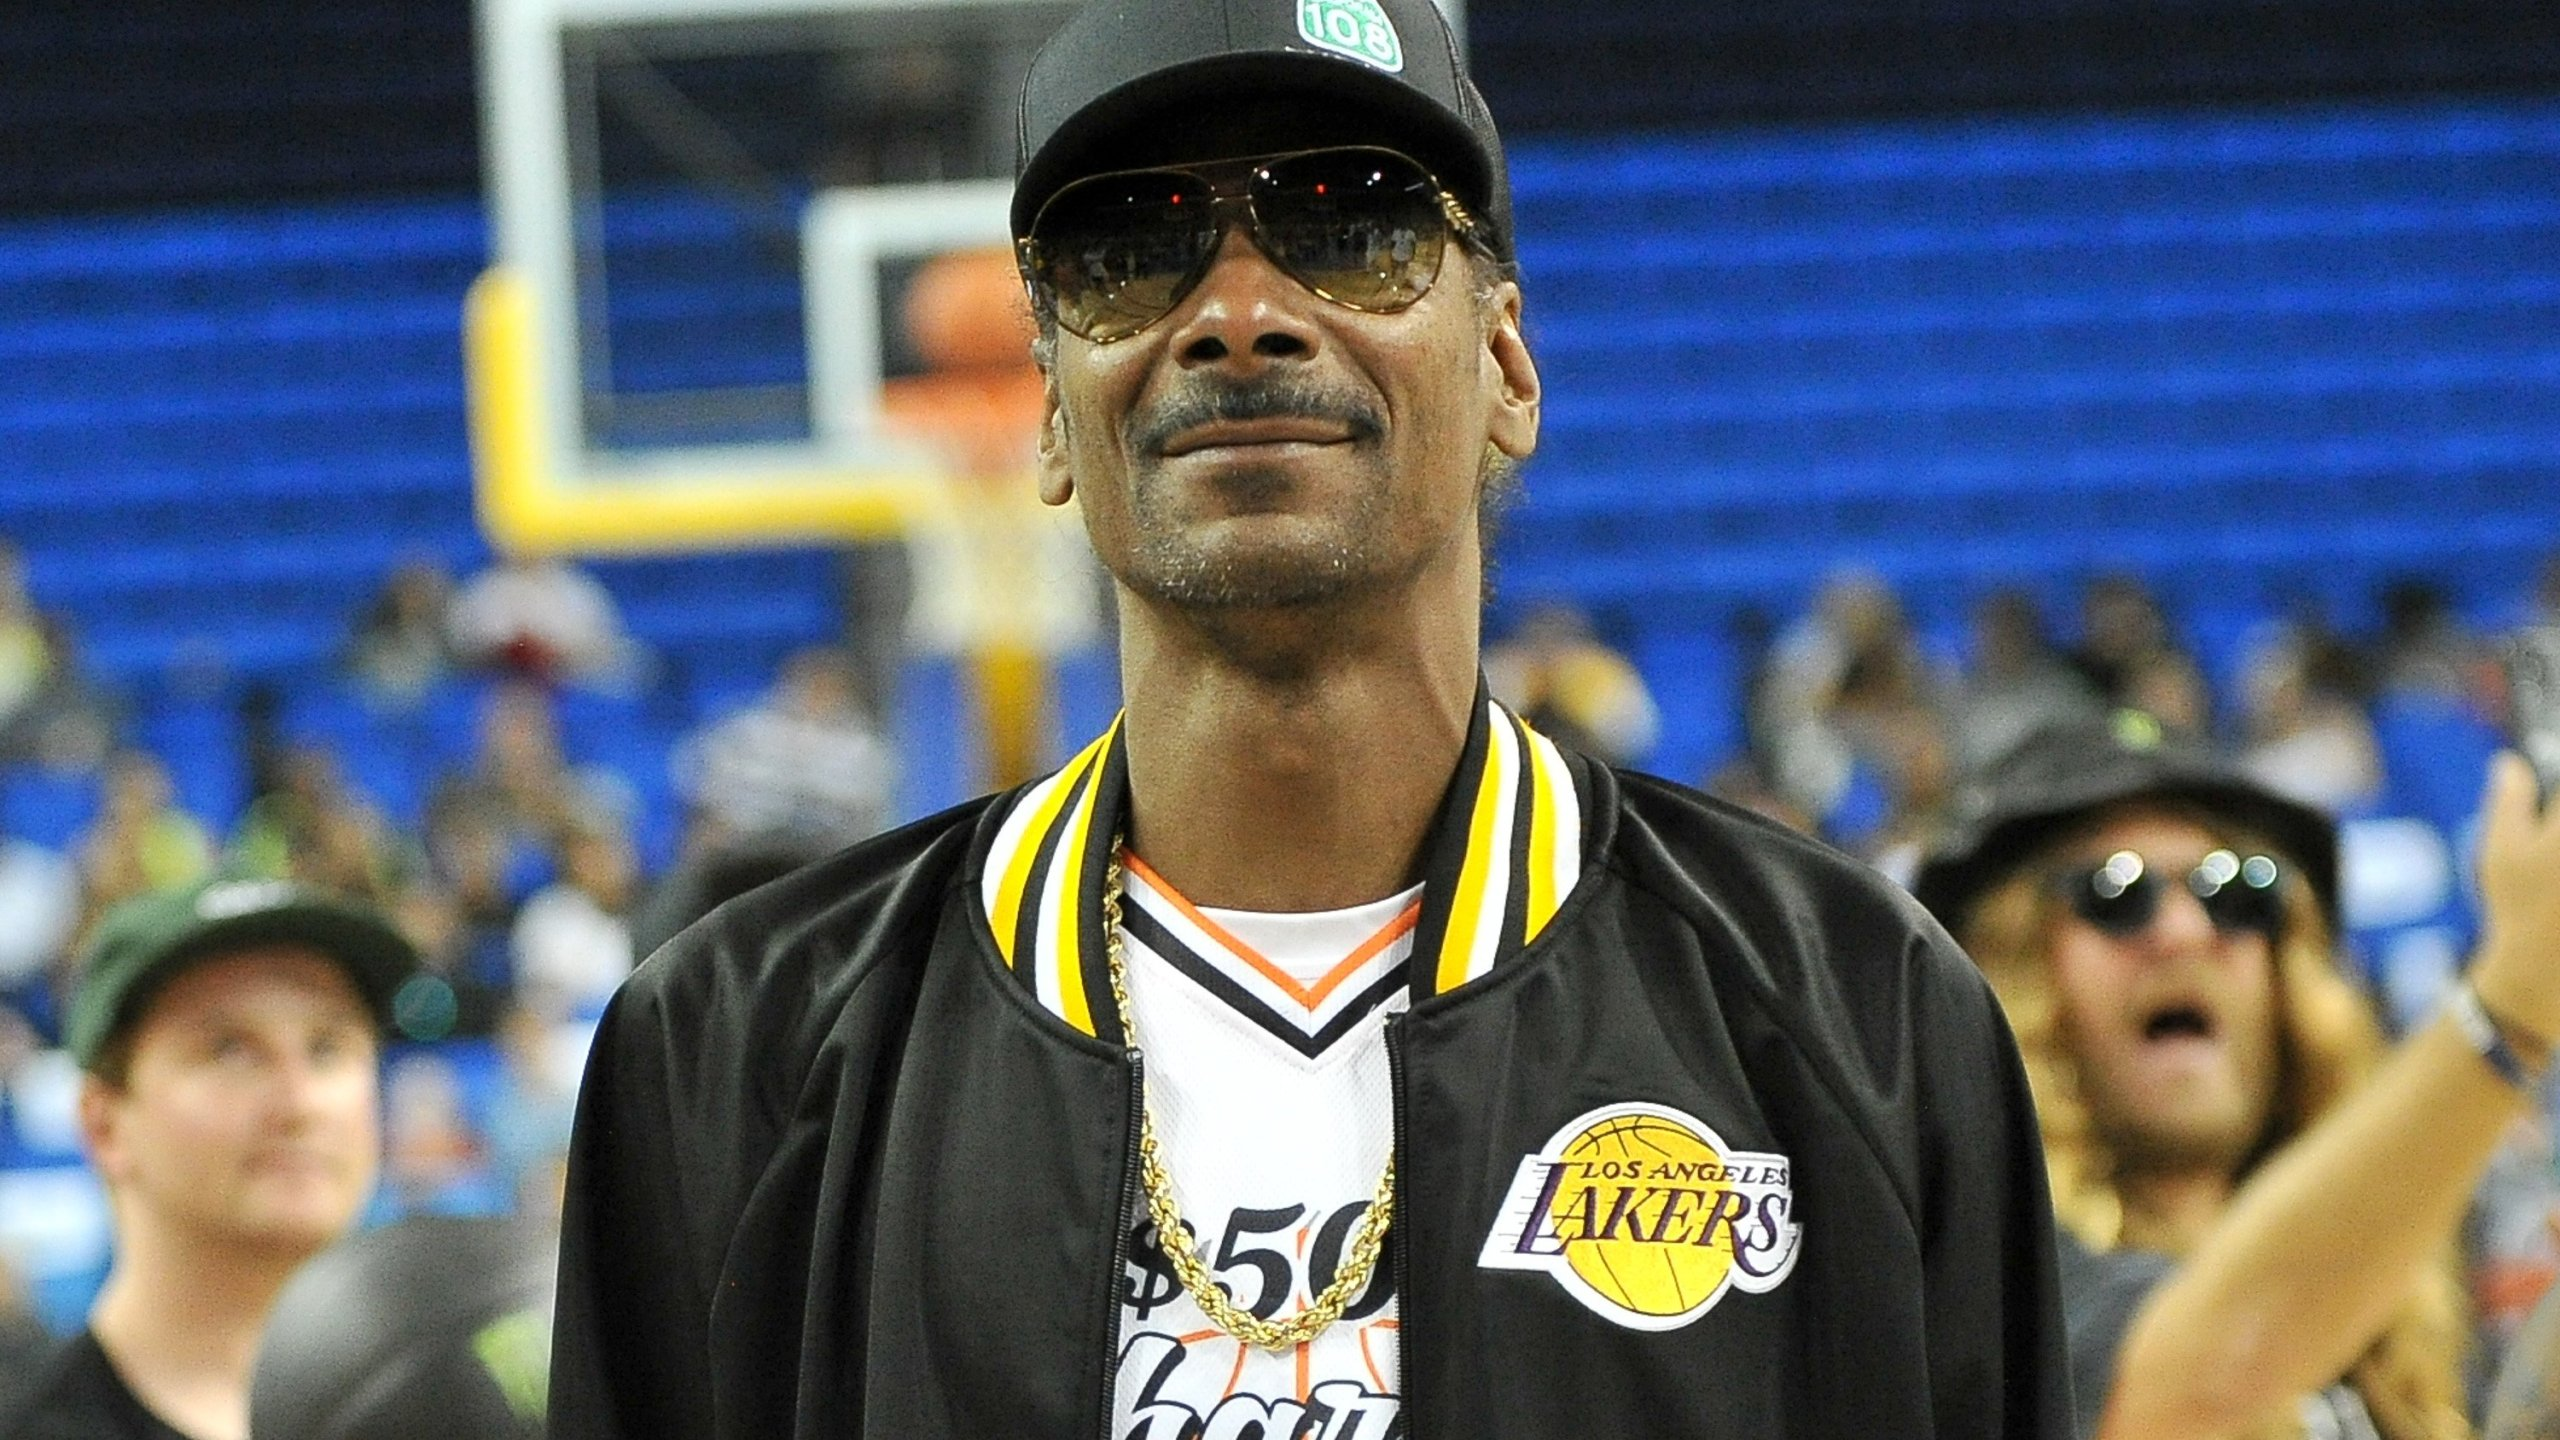 Snoop Dogg attends the Monster Energy $50K Charity Challenge Celebrity Basketball Game at UCLA's Pauley Pavilion on July 8, 2019, in Westwood, California. (Credit: Allen Berezovsky/Getty Images)